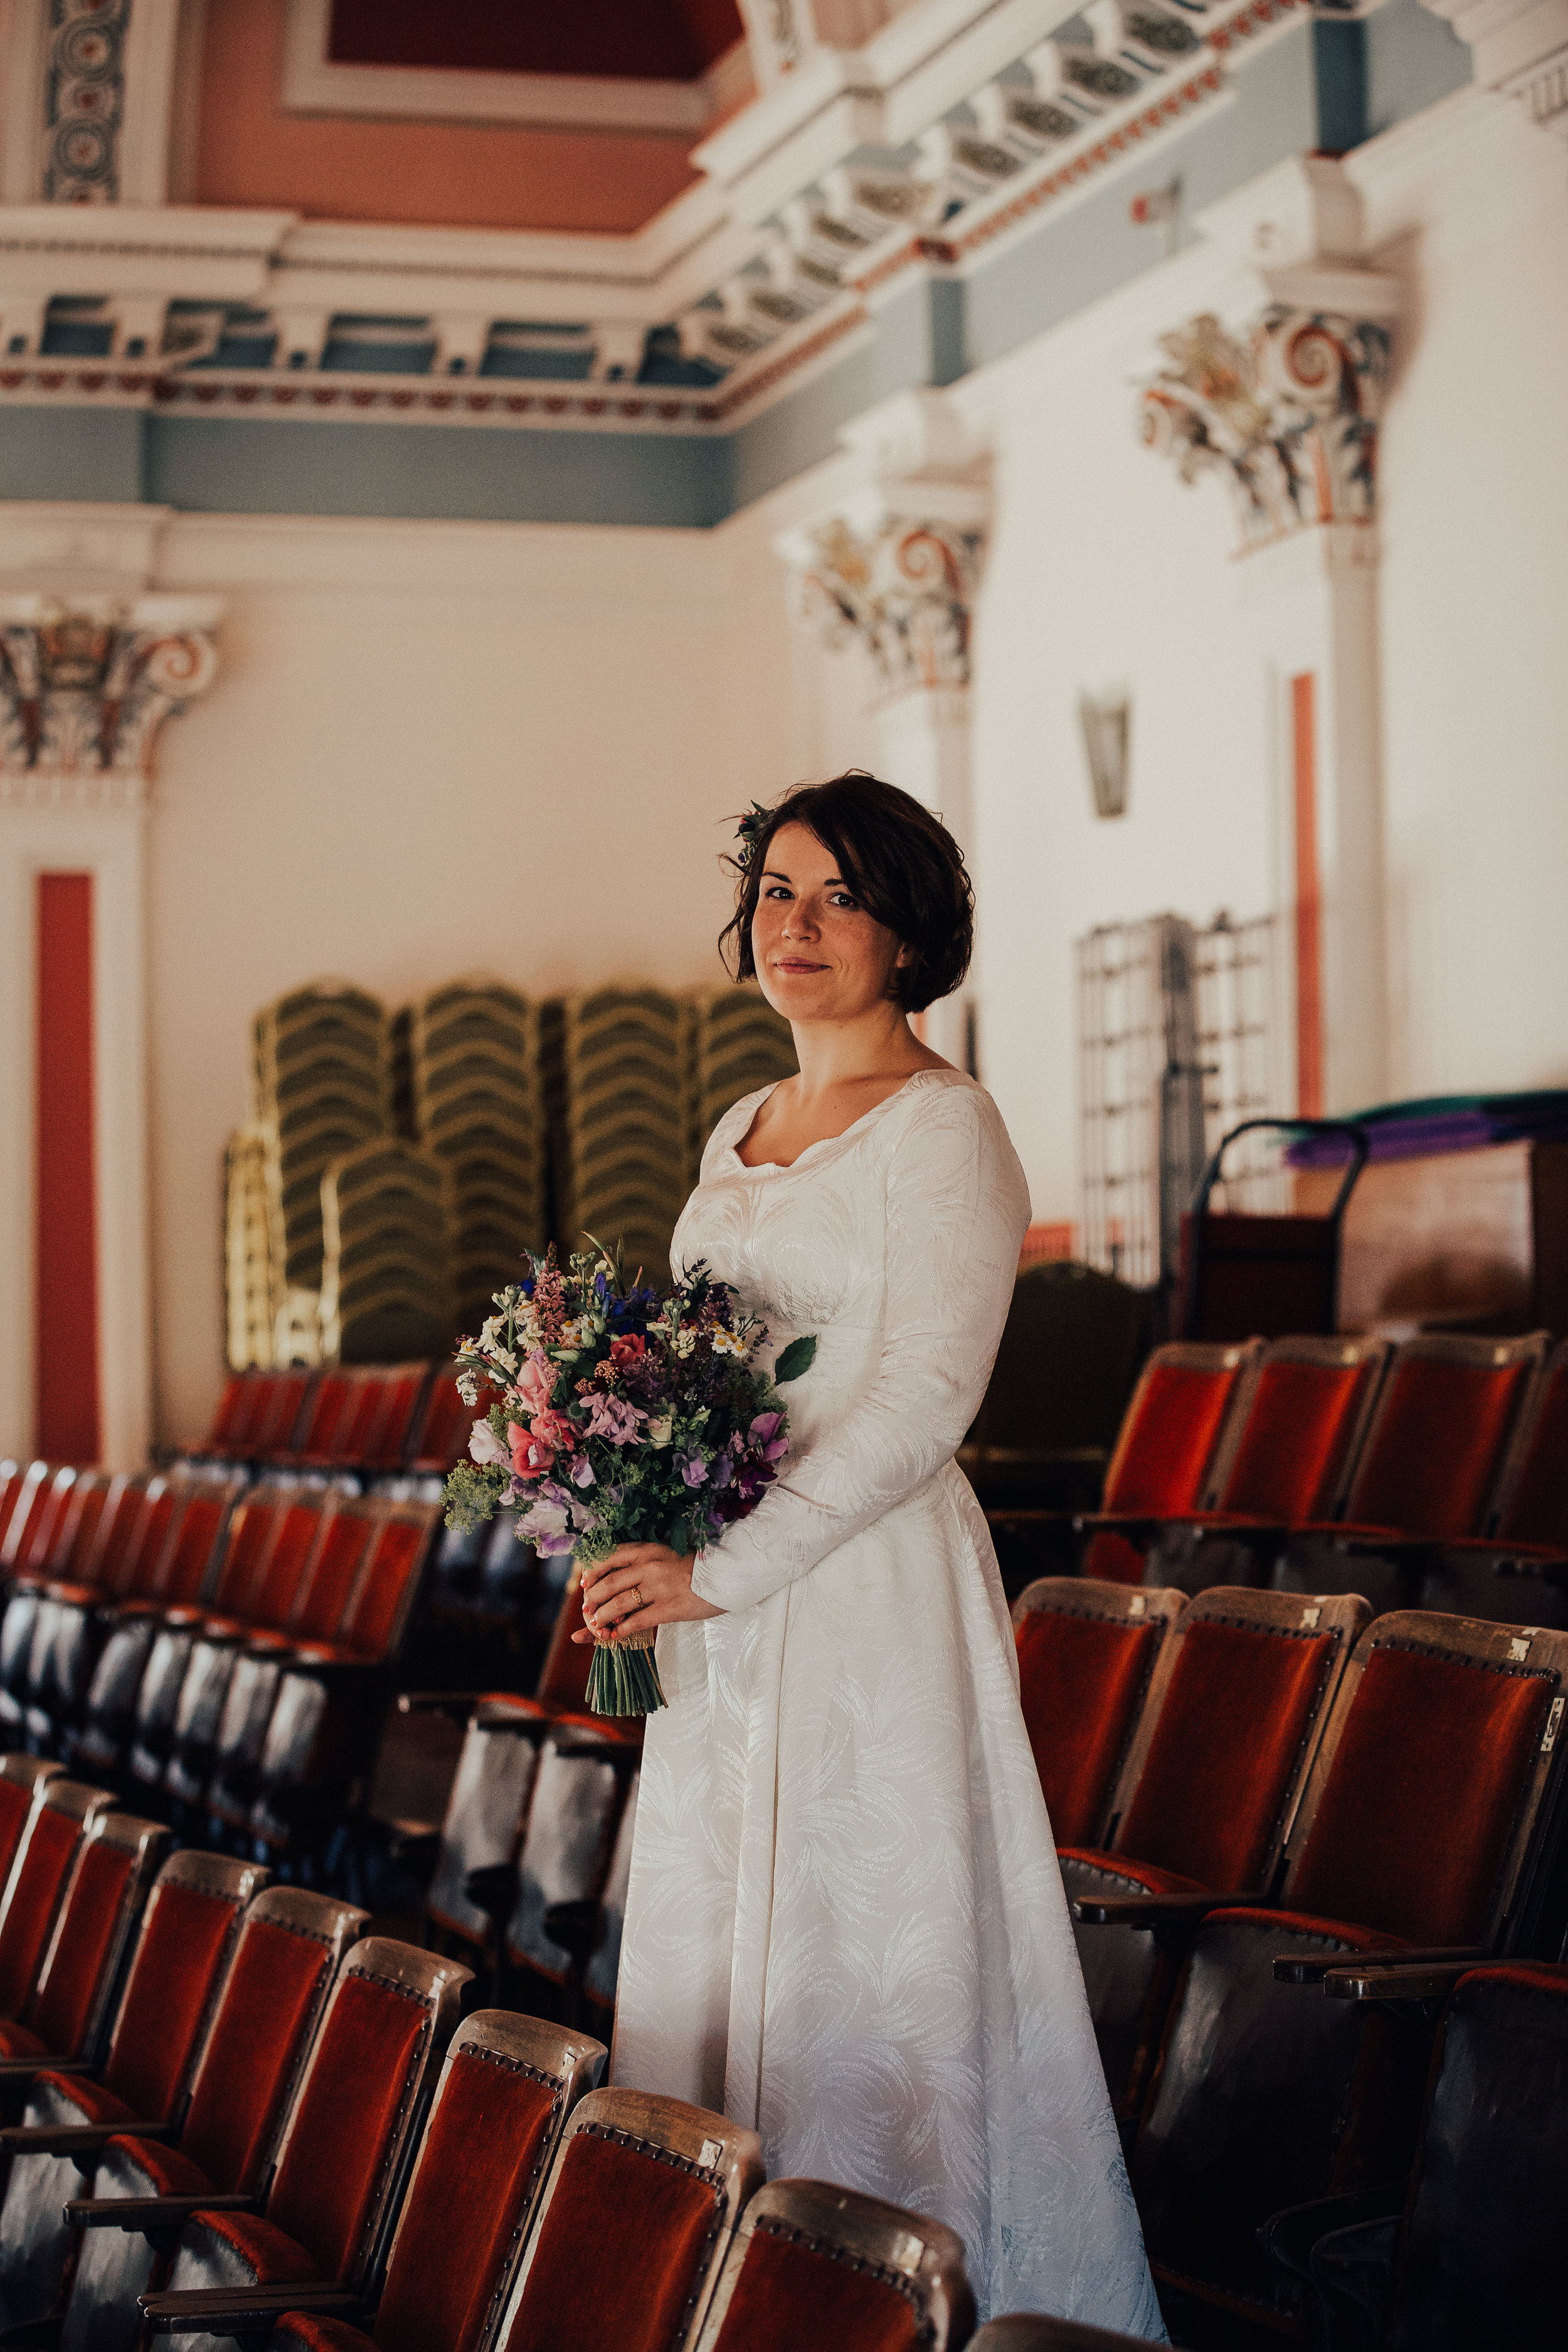 VICTORIA_HALL_SALTAIRE_VINTAGE_YORKSHIRE_WEDDING_PJ_PHILLIPS_PHOTOGRAPHY_72.jpg